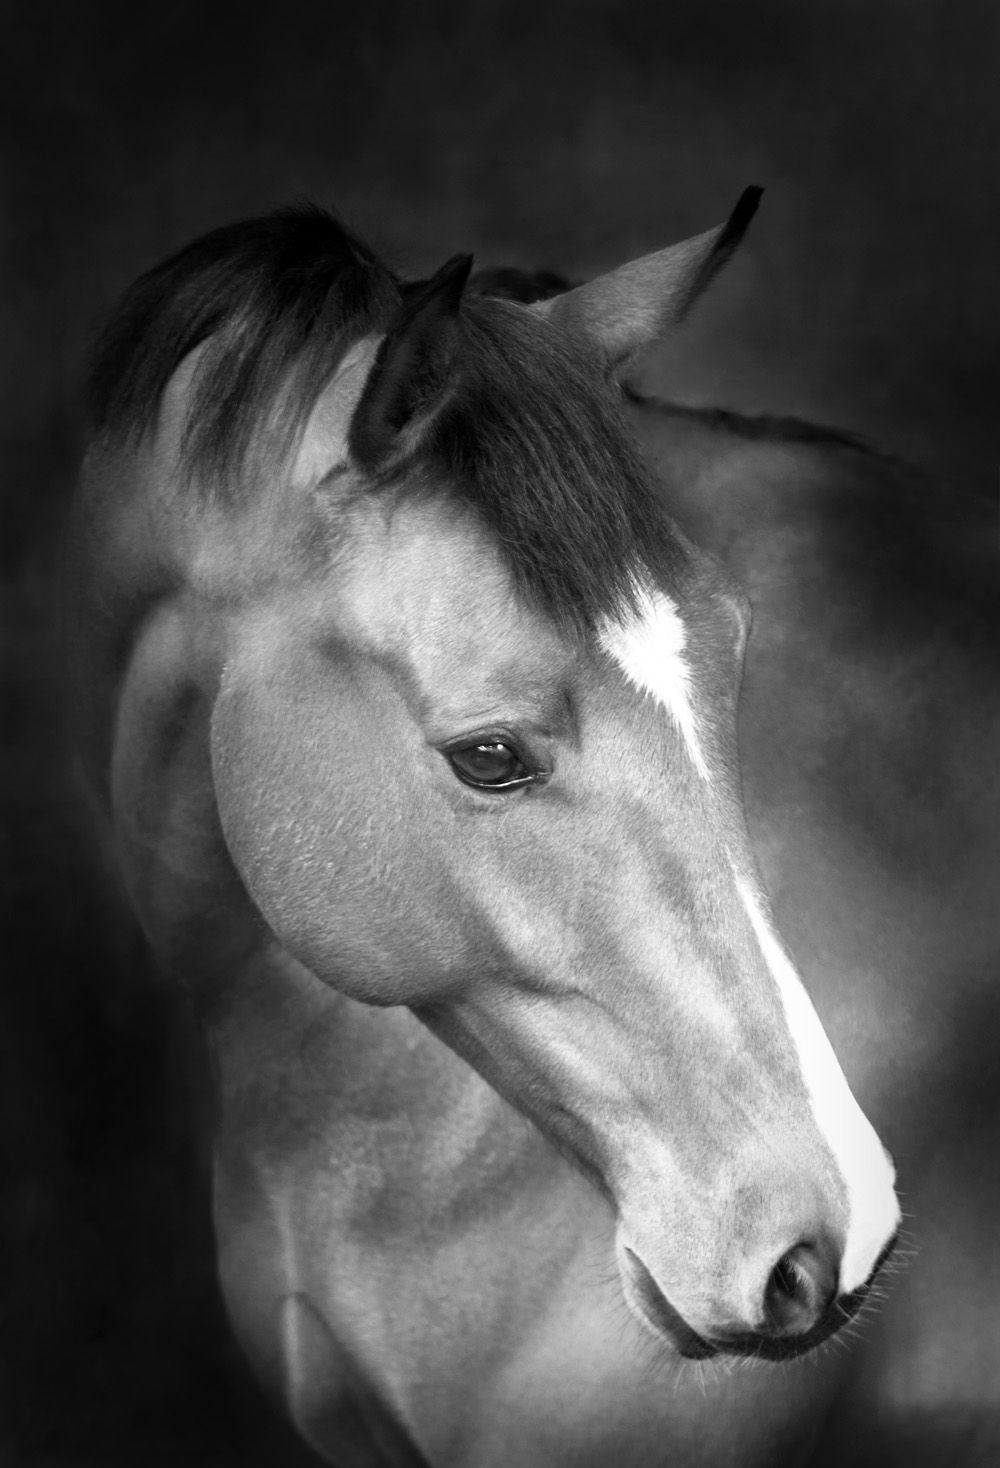 Black and white equine photography pinterest equine photography black photography and gallery gallery